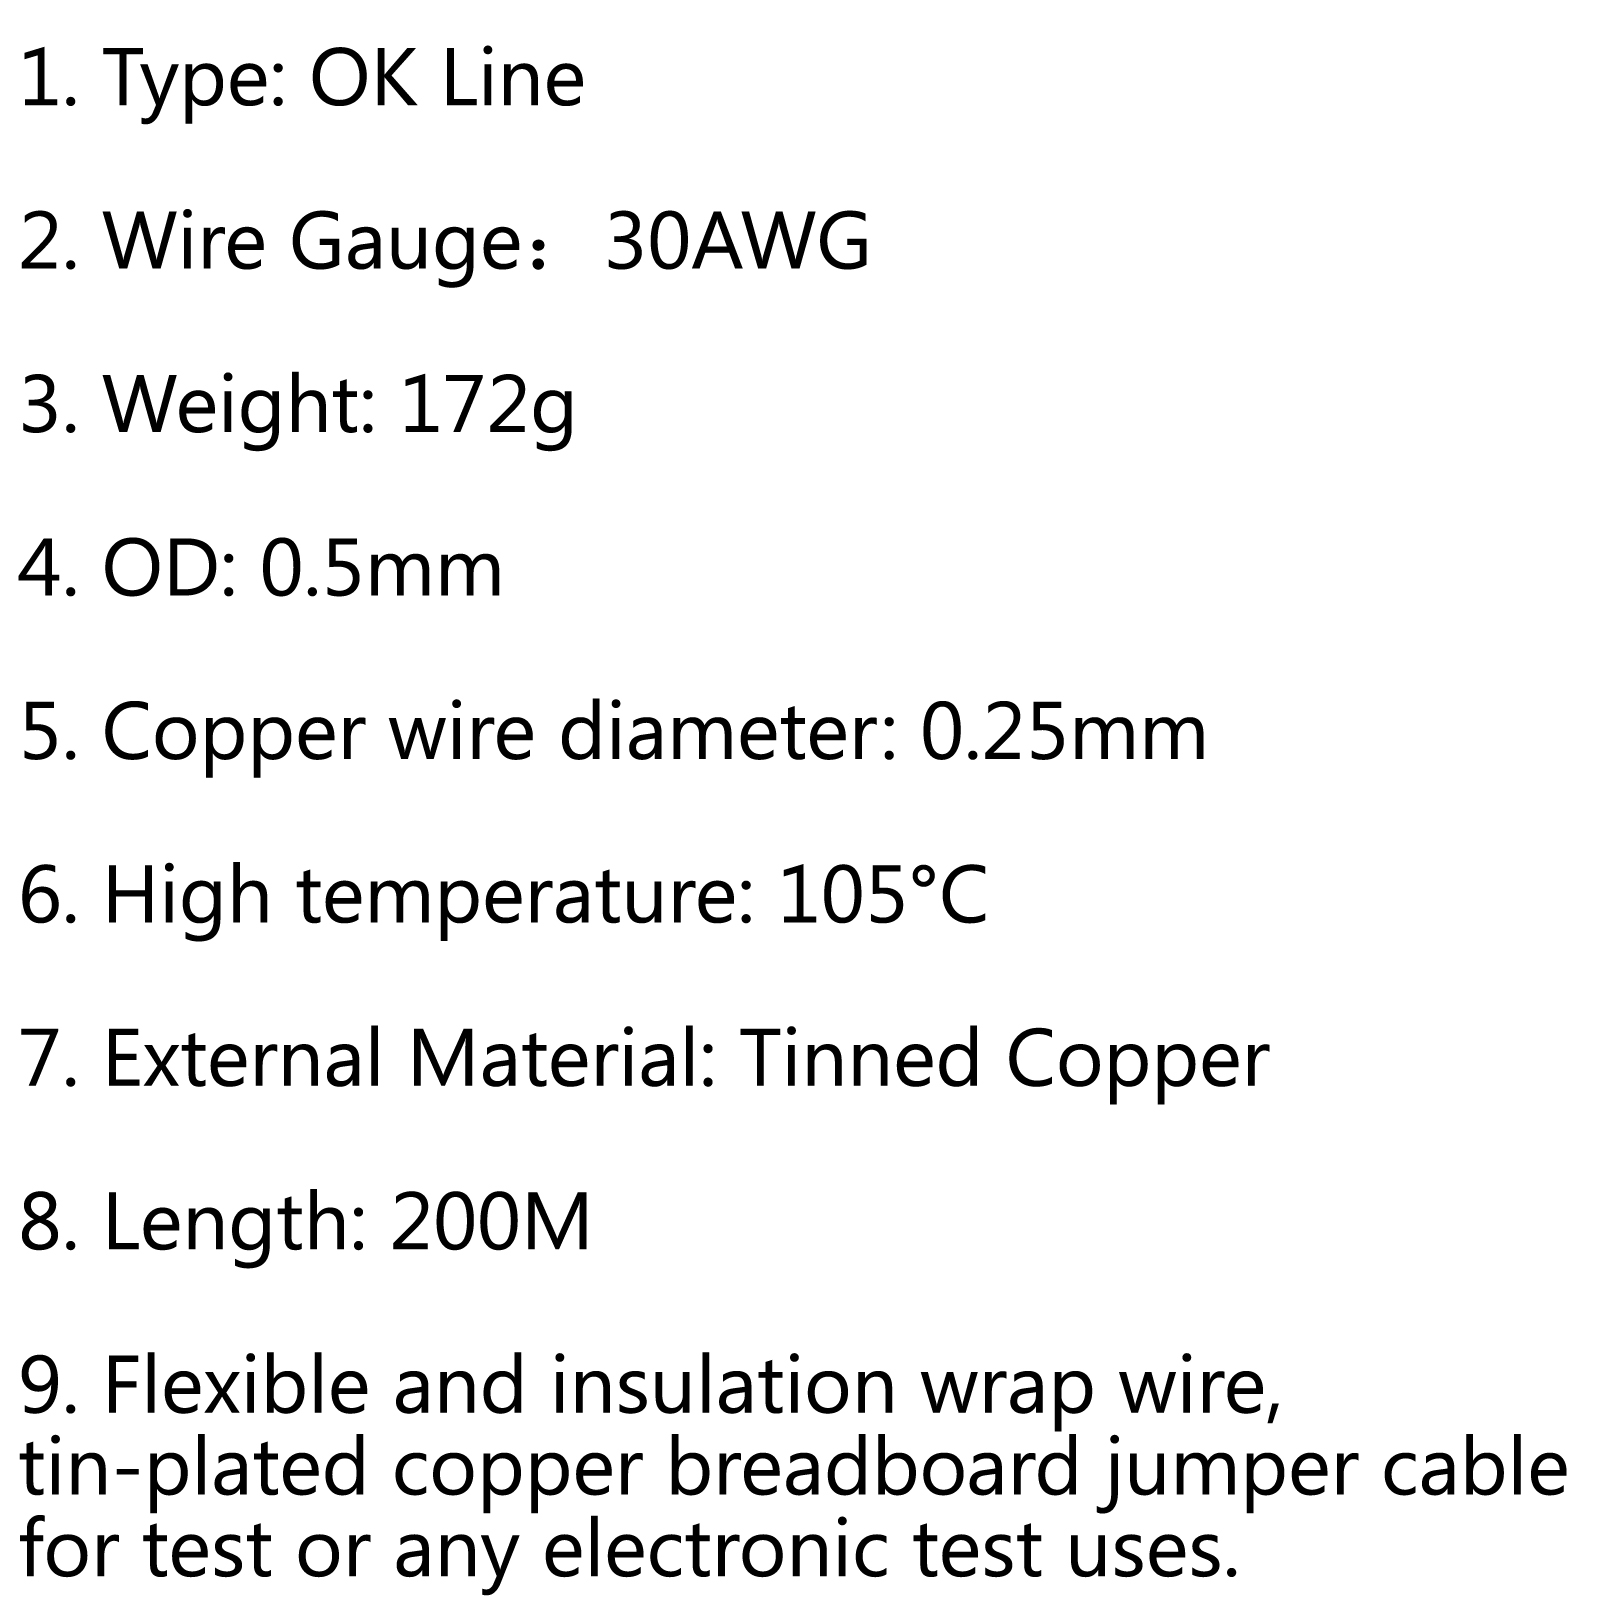 Enchanting 4 0 copper wire weight image electrical and wiring 200m 30awg electrical wrapping wire single core ok line airline greentooth Gallery